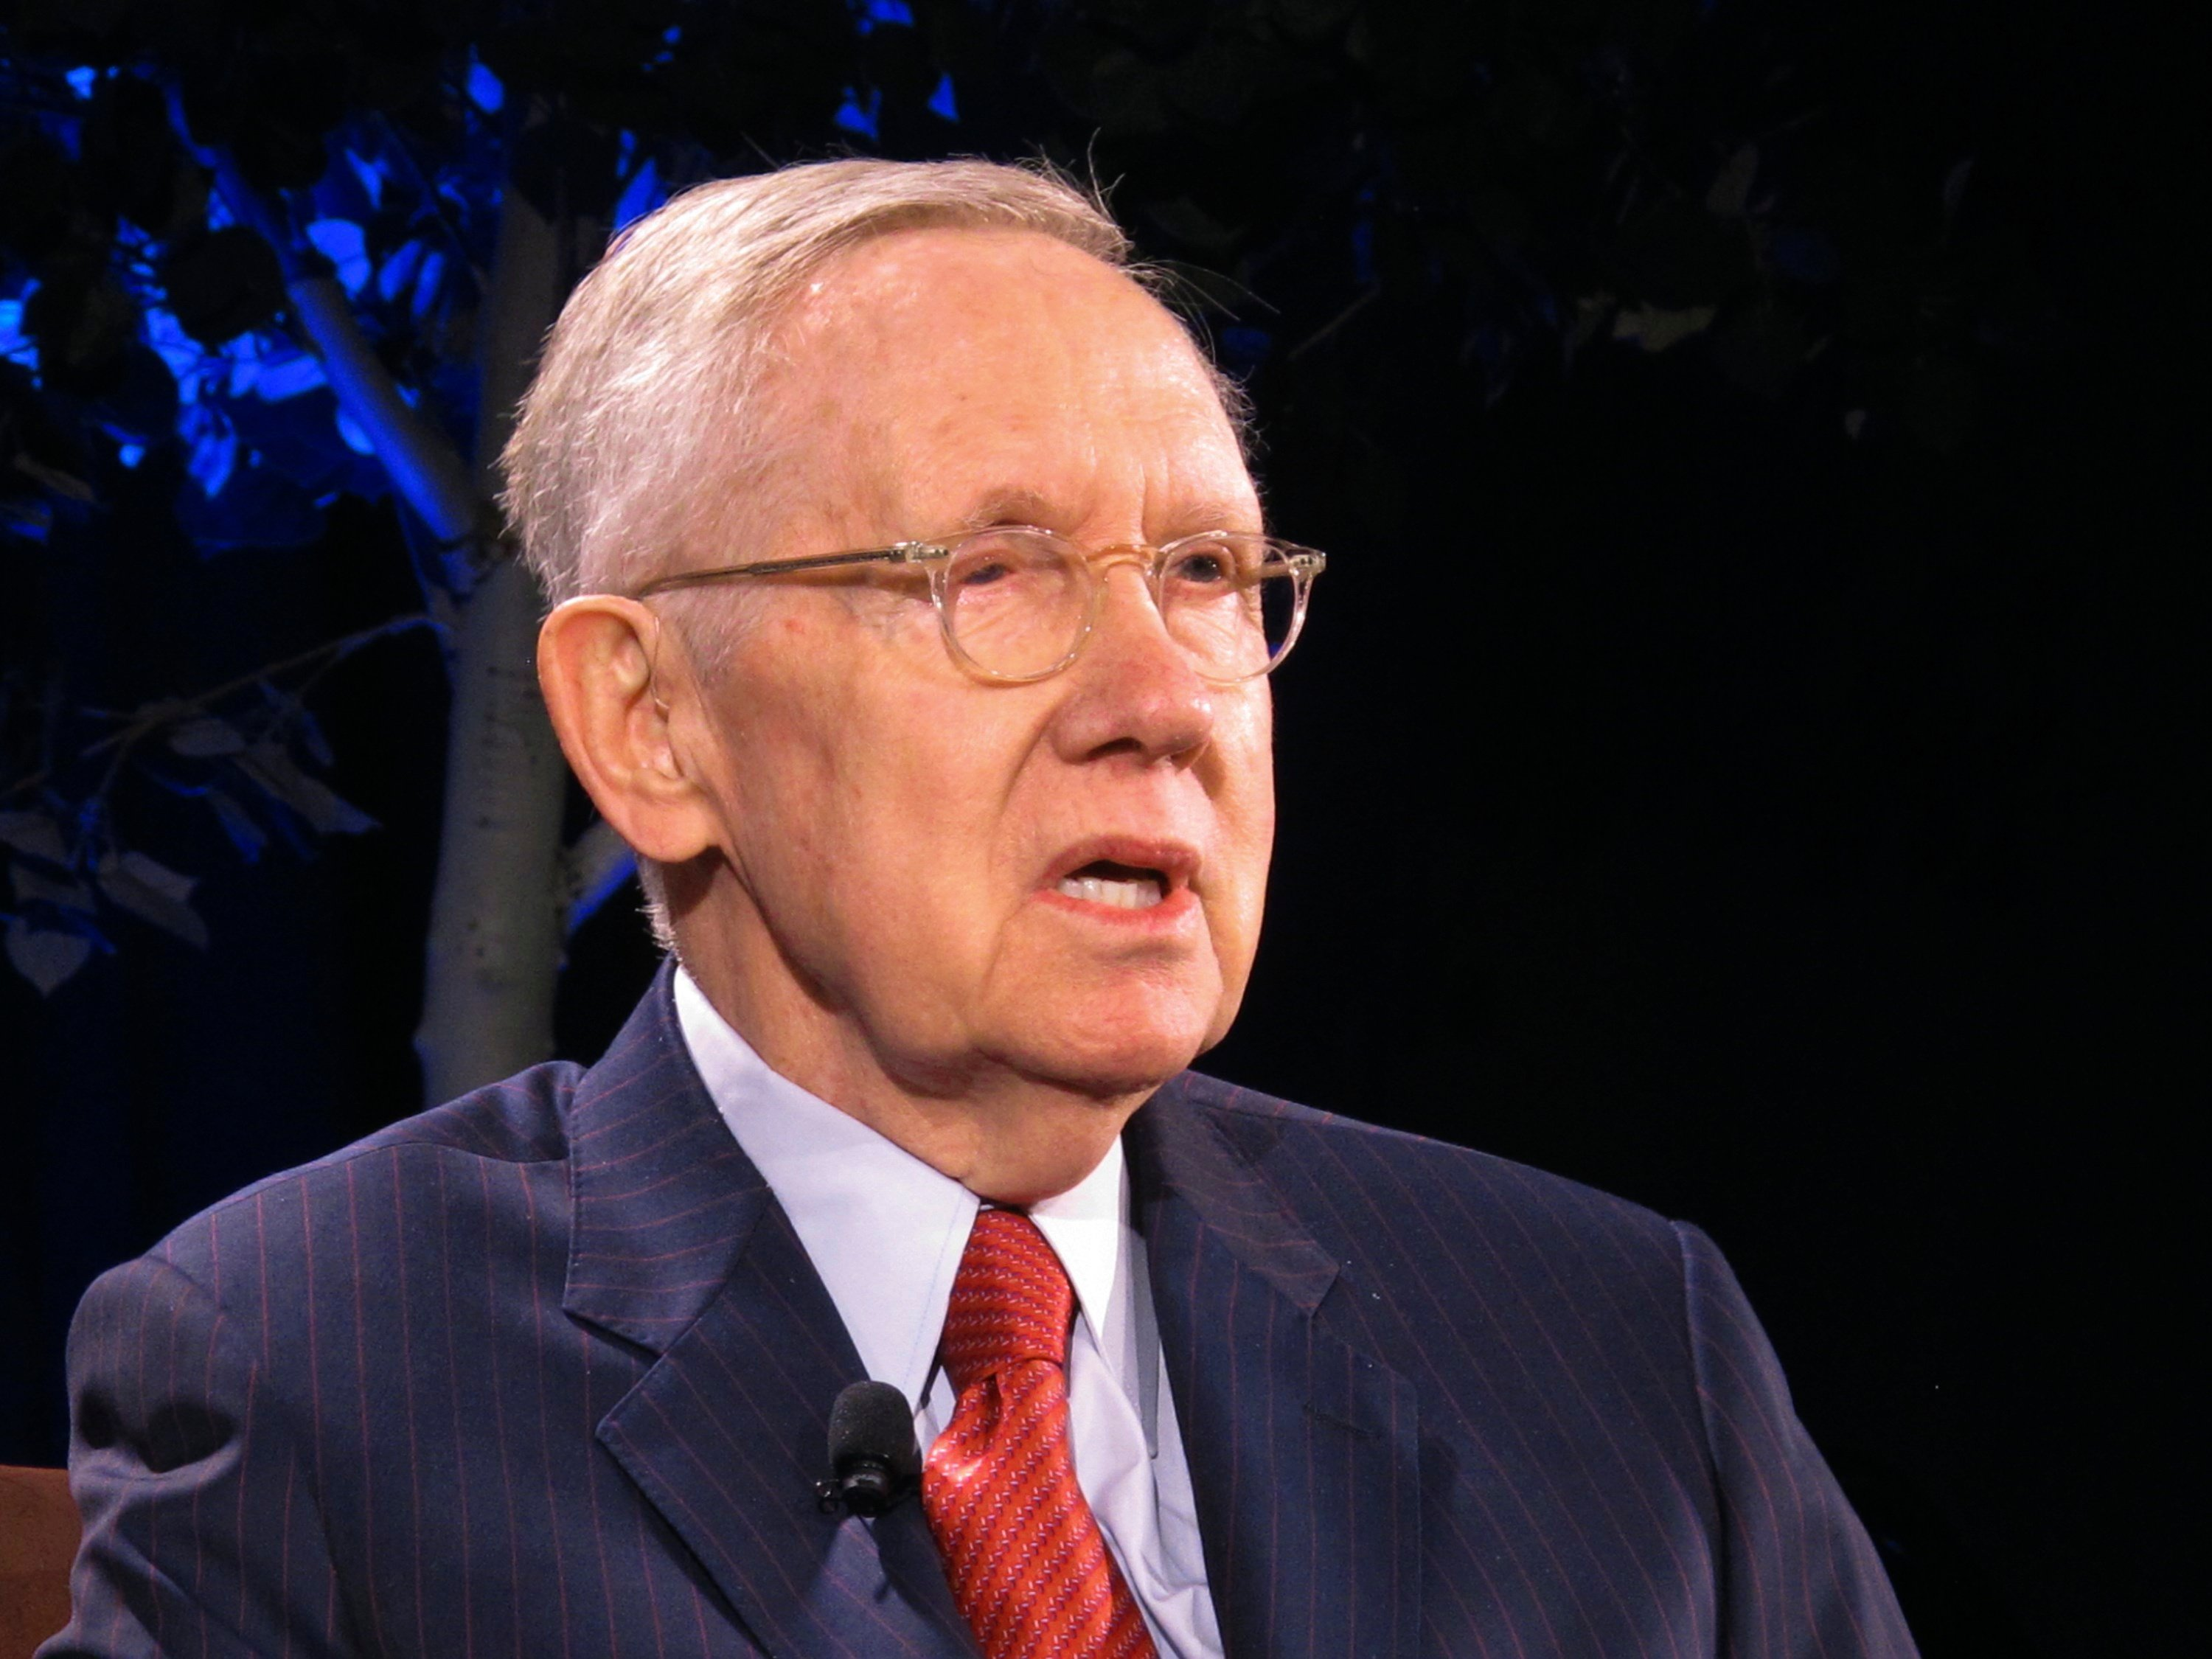 Former Senate Democratic leader Harry Reid has surgery for pancreatic cancer